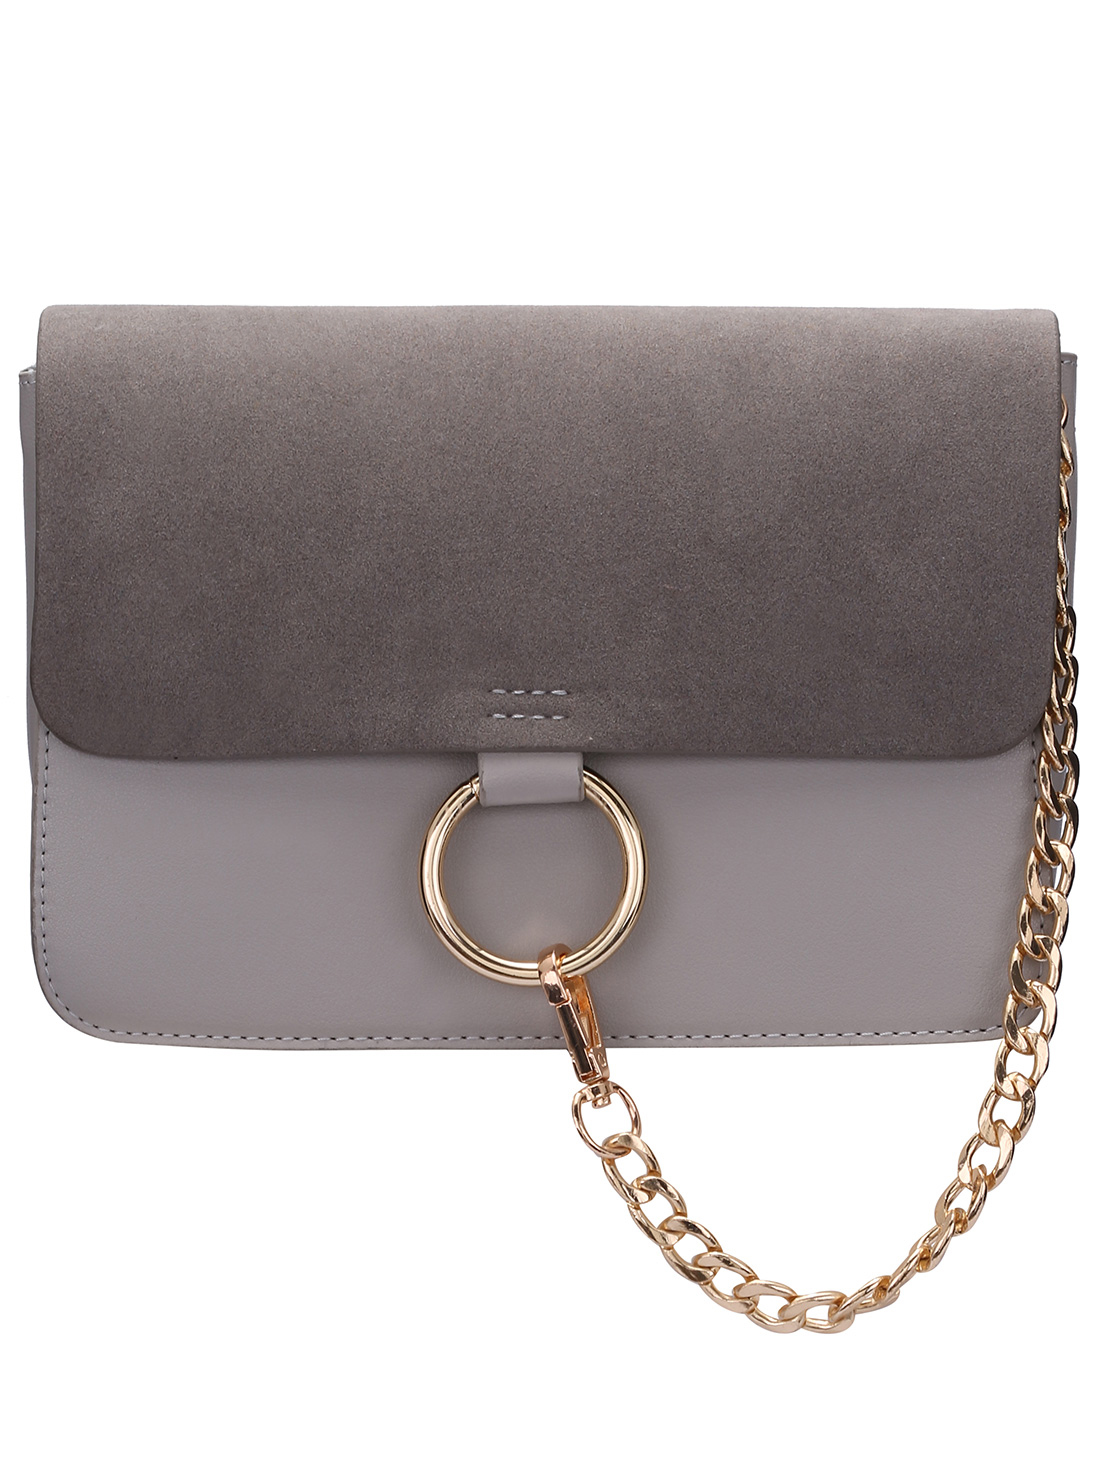 Chain Ring Embellished Satchel Bag -SheIn(Sheinside)